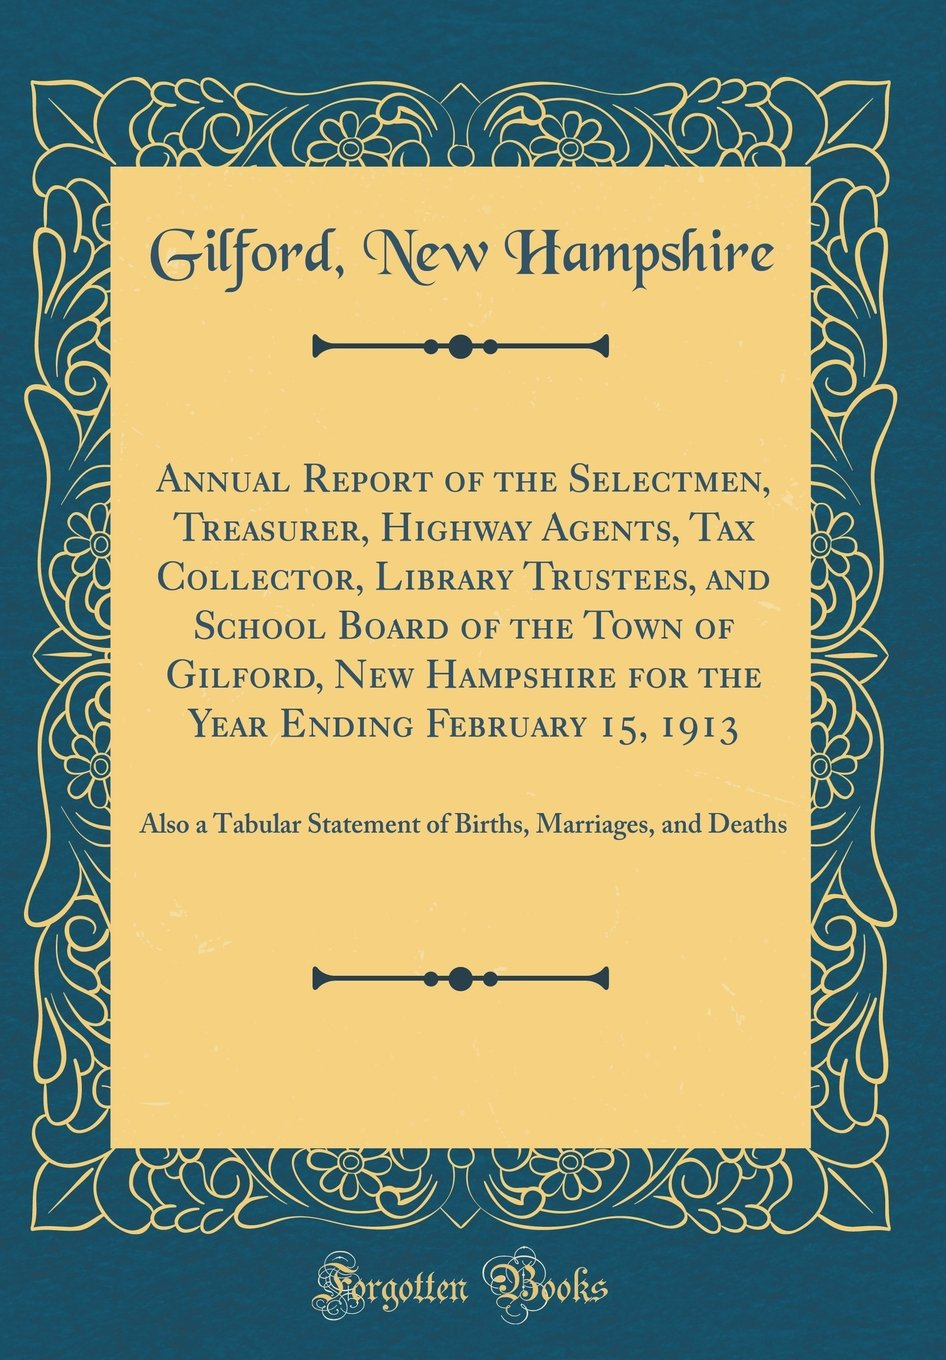 Read Online Annual Report of the Selectmen, Treasurer, Highway Agents, Tax Collector, Library Trustees, and School Board of the Town of Gilford, New Hampshire for ... Statement of Births, Marriages, and Deaths ebook